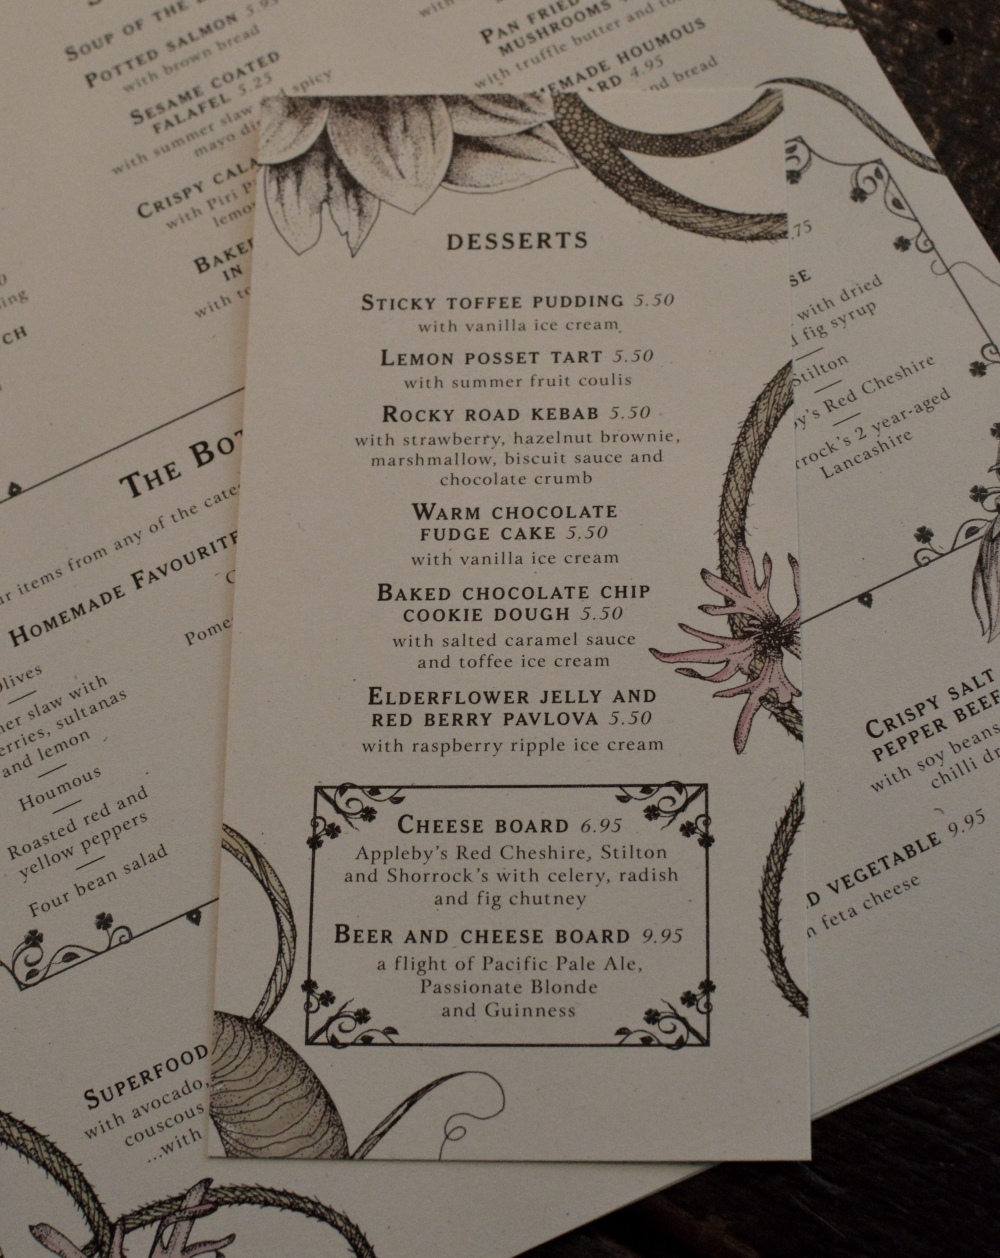 Dessert Menu - The Botanist